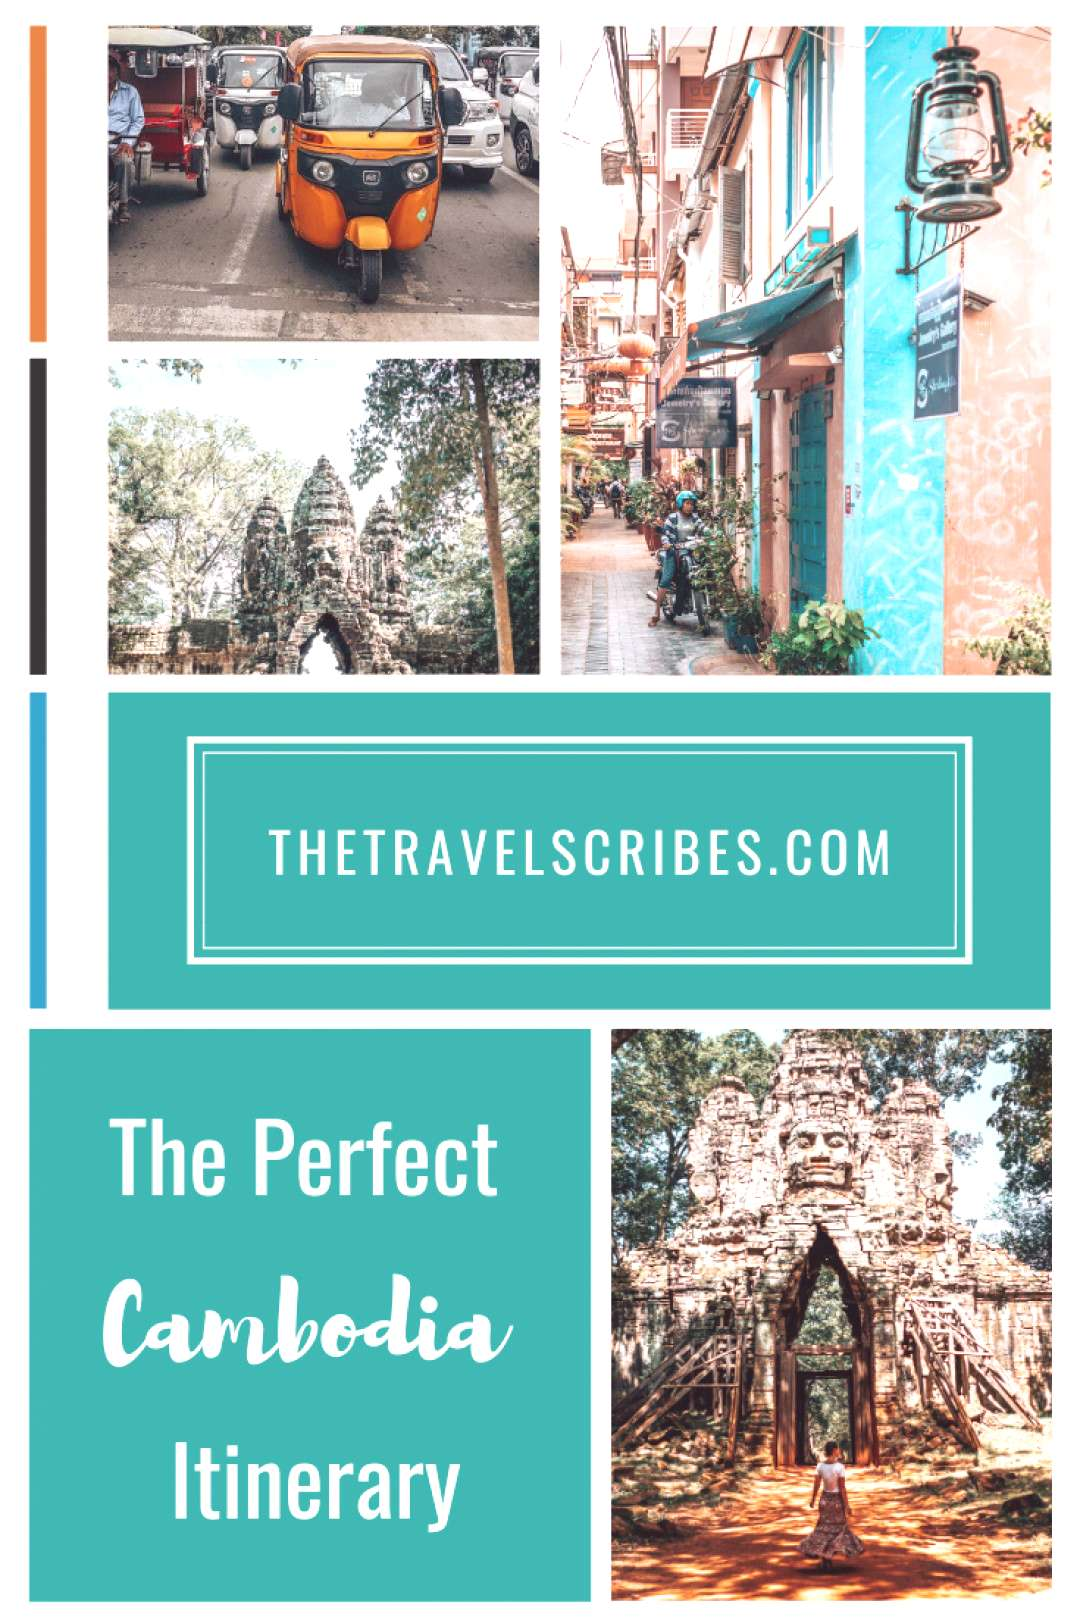 How to spend 10 days in Cambodia - The Travel Scribes If youre looking for the perfect itinerary f